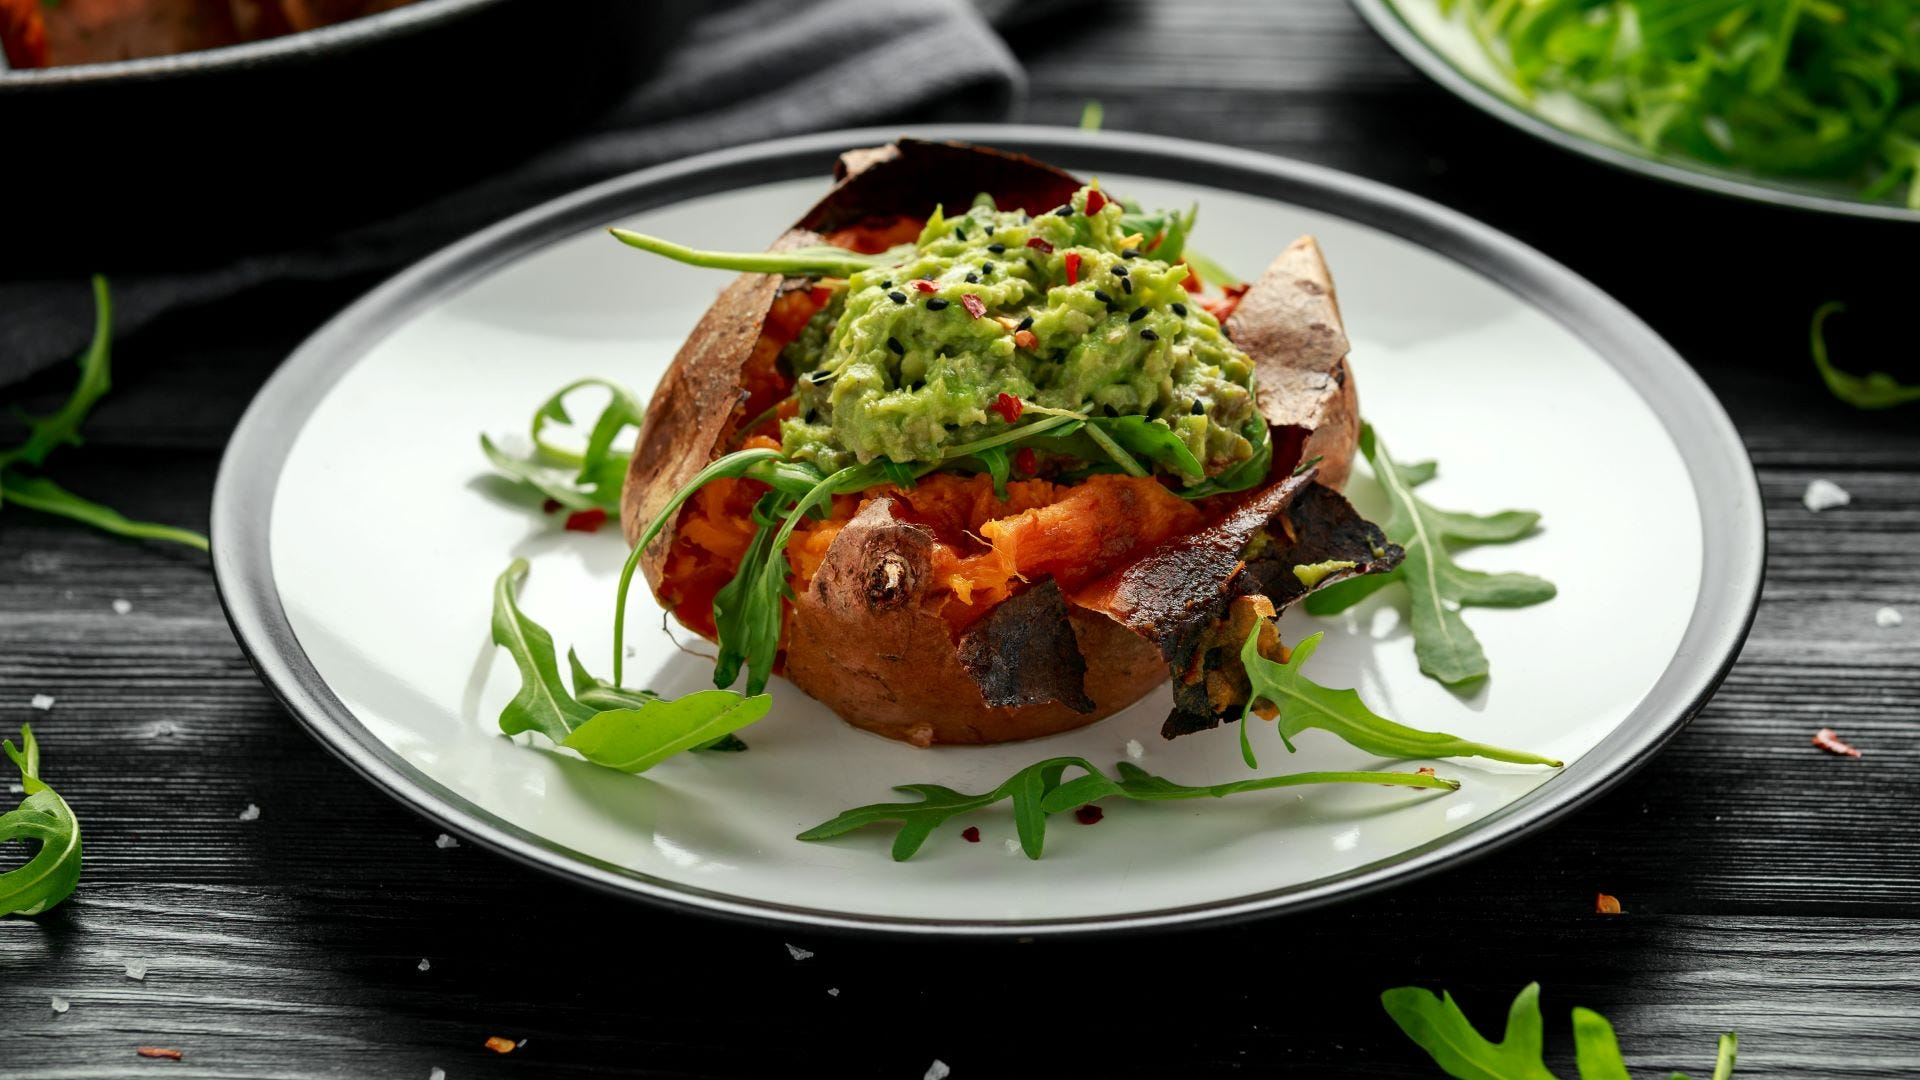 A sweet potato boat stuffed with avocado guacamole and wild rocket sprinkled with nigella seeds.